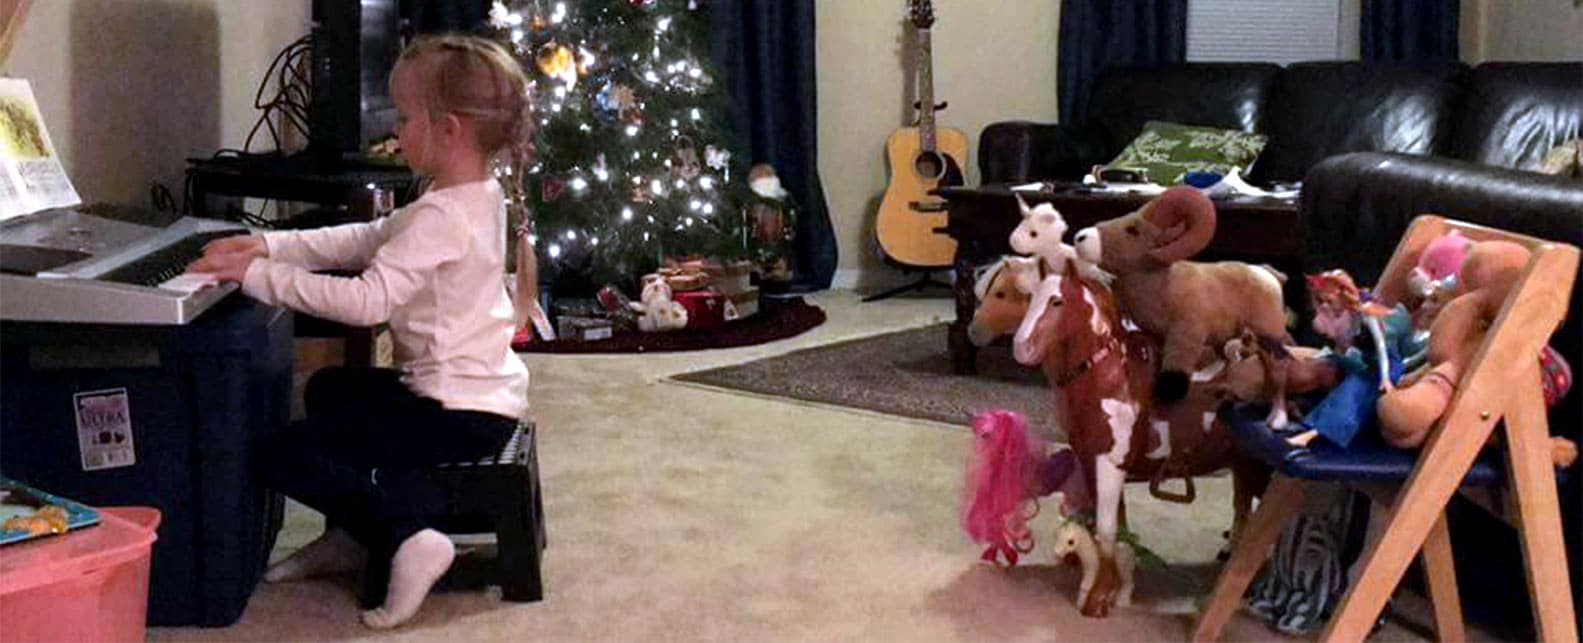 Music student practicing for her first recital with her stuffed animal audience.